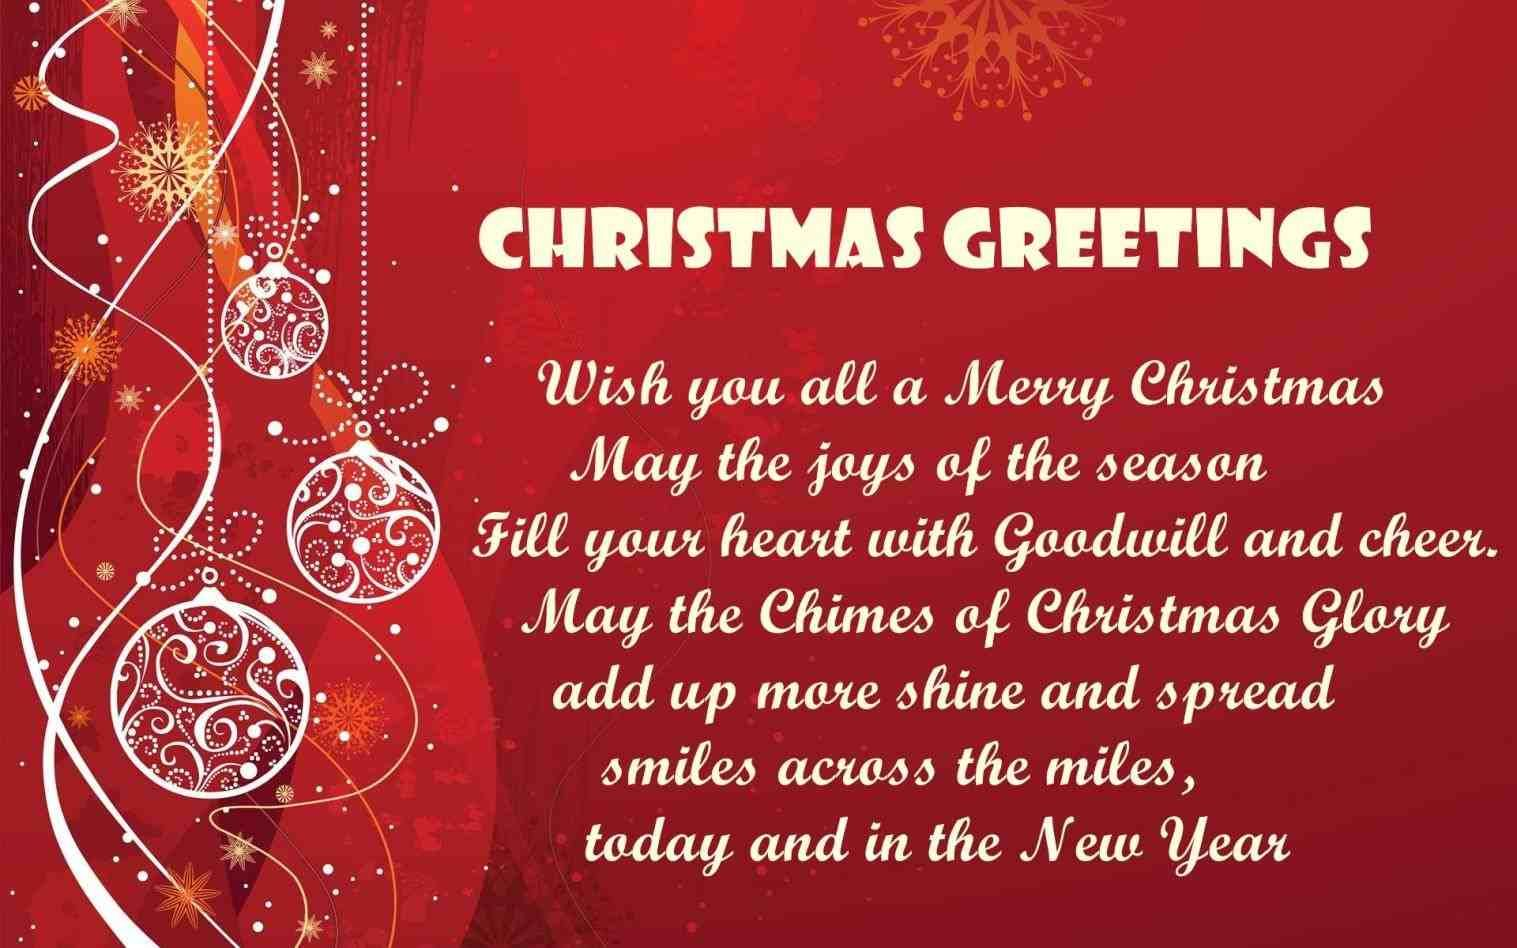 New Post Religious Merry Christmas Messages Xmast Pinterest